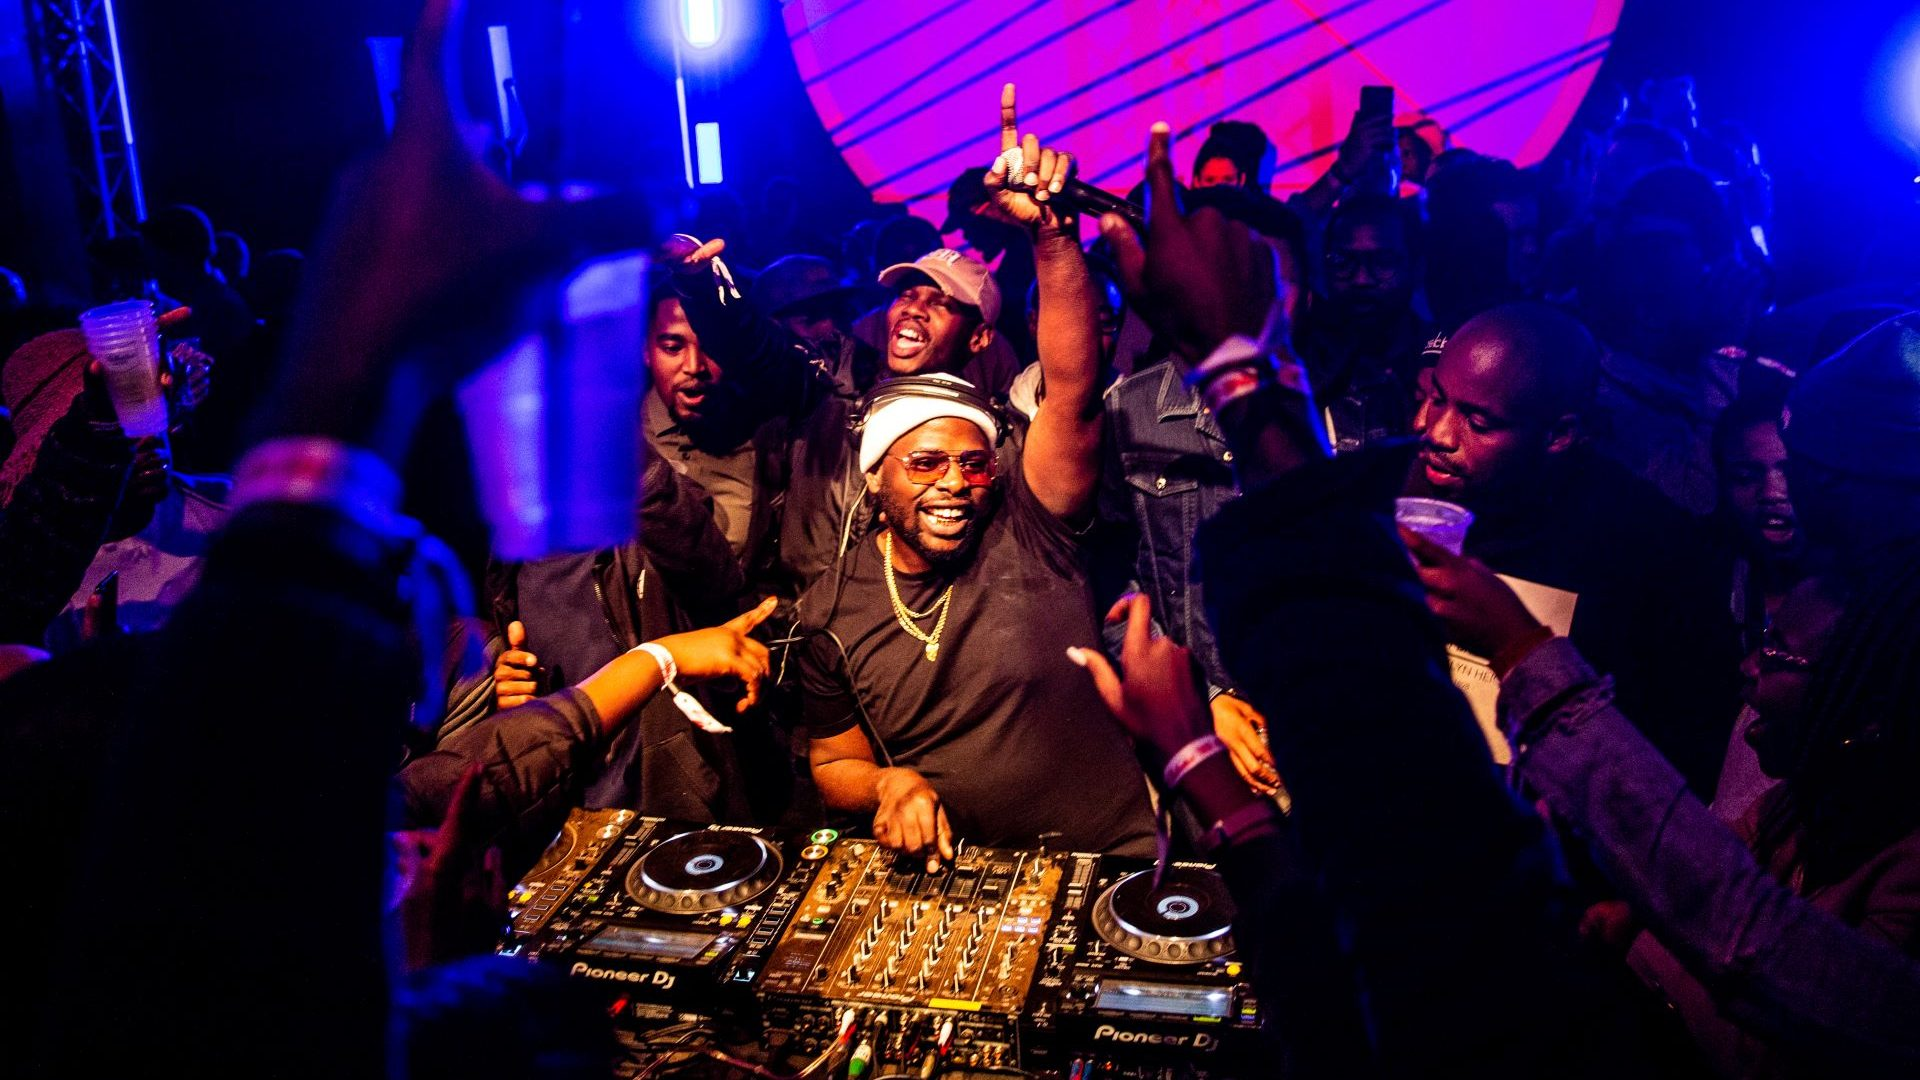 ballantines-boiler-room-true-music-africa-johannesburg-maphorisa-aspect-ratio-16-9